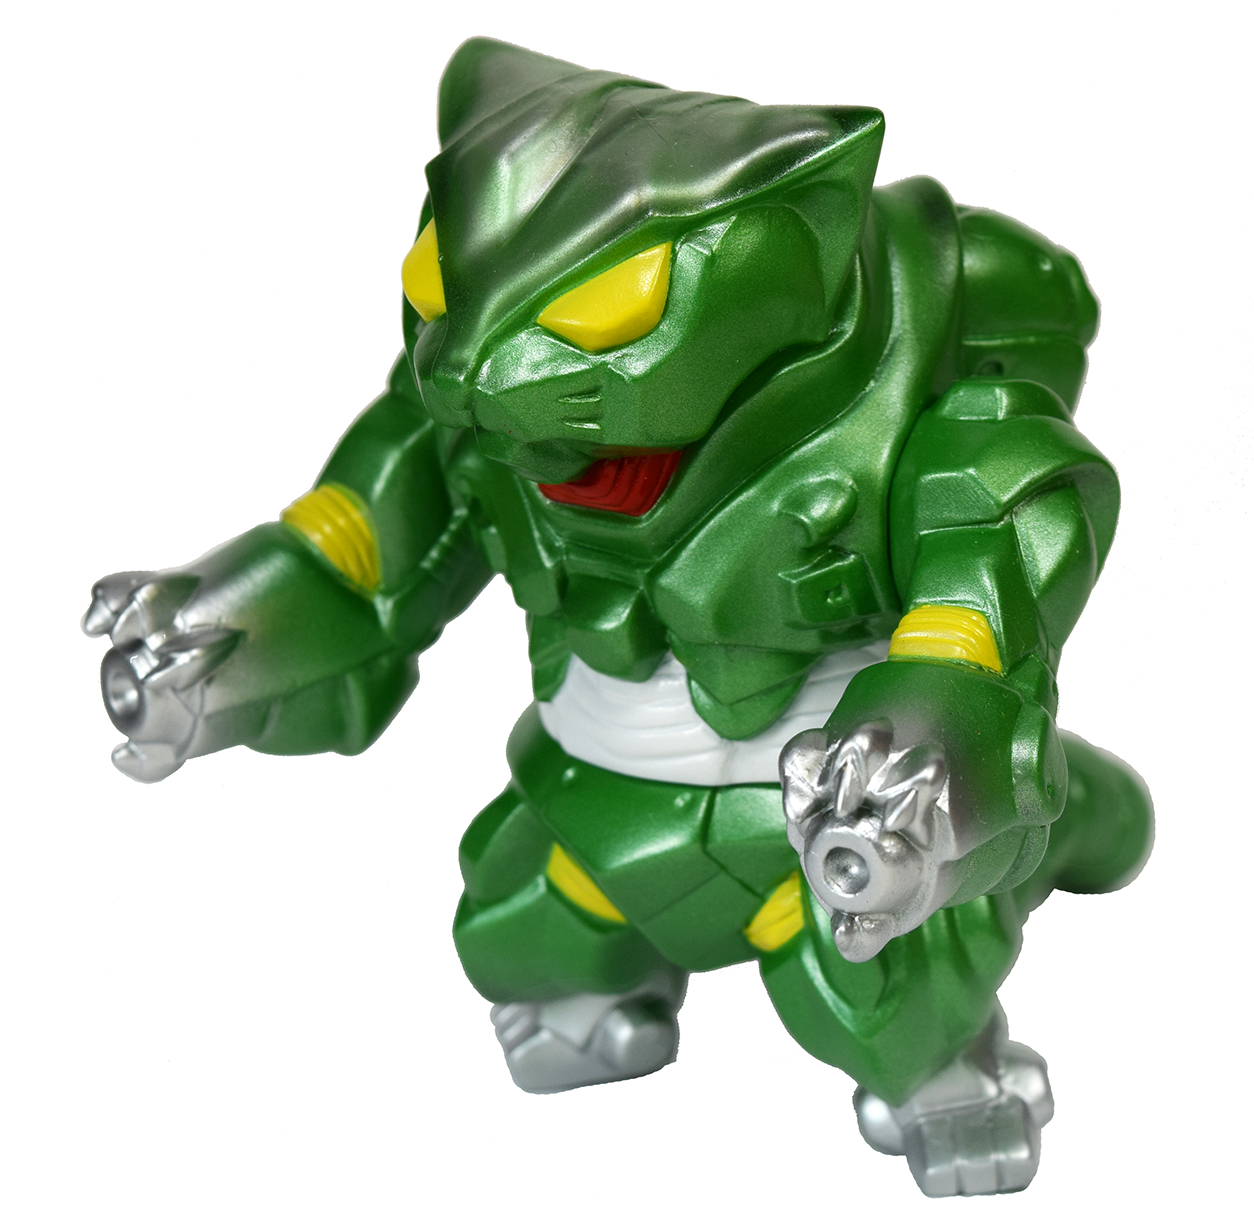 Mecha Nekoron MK3 Cat kaiju green